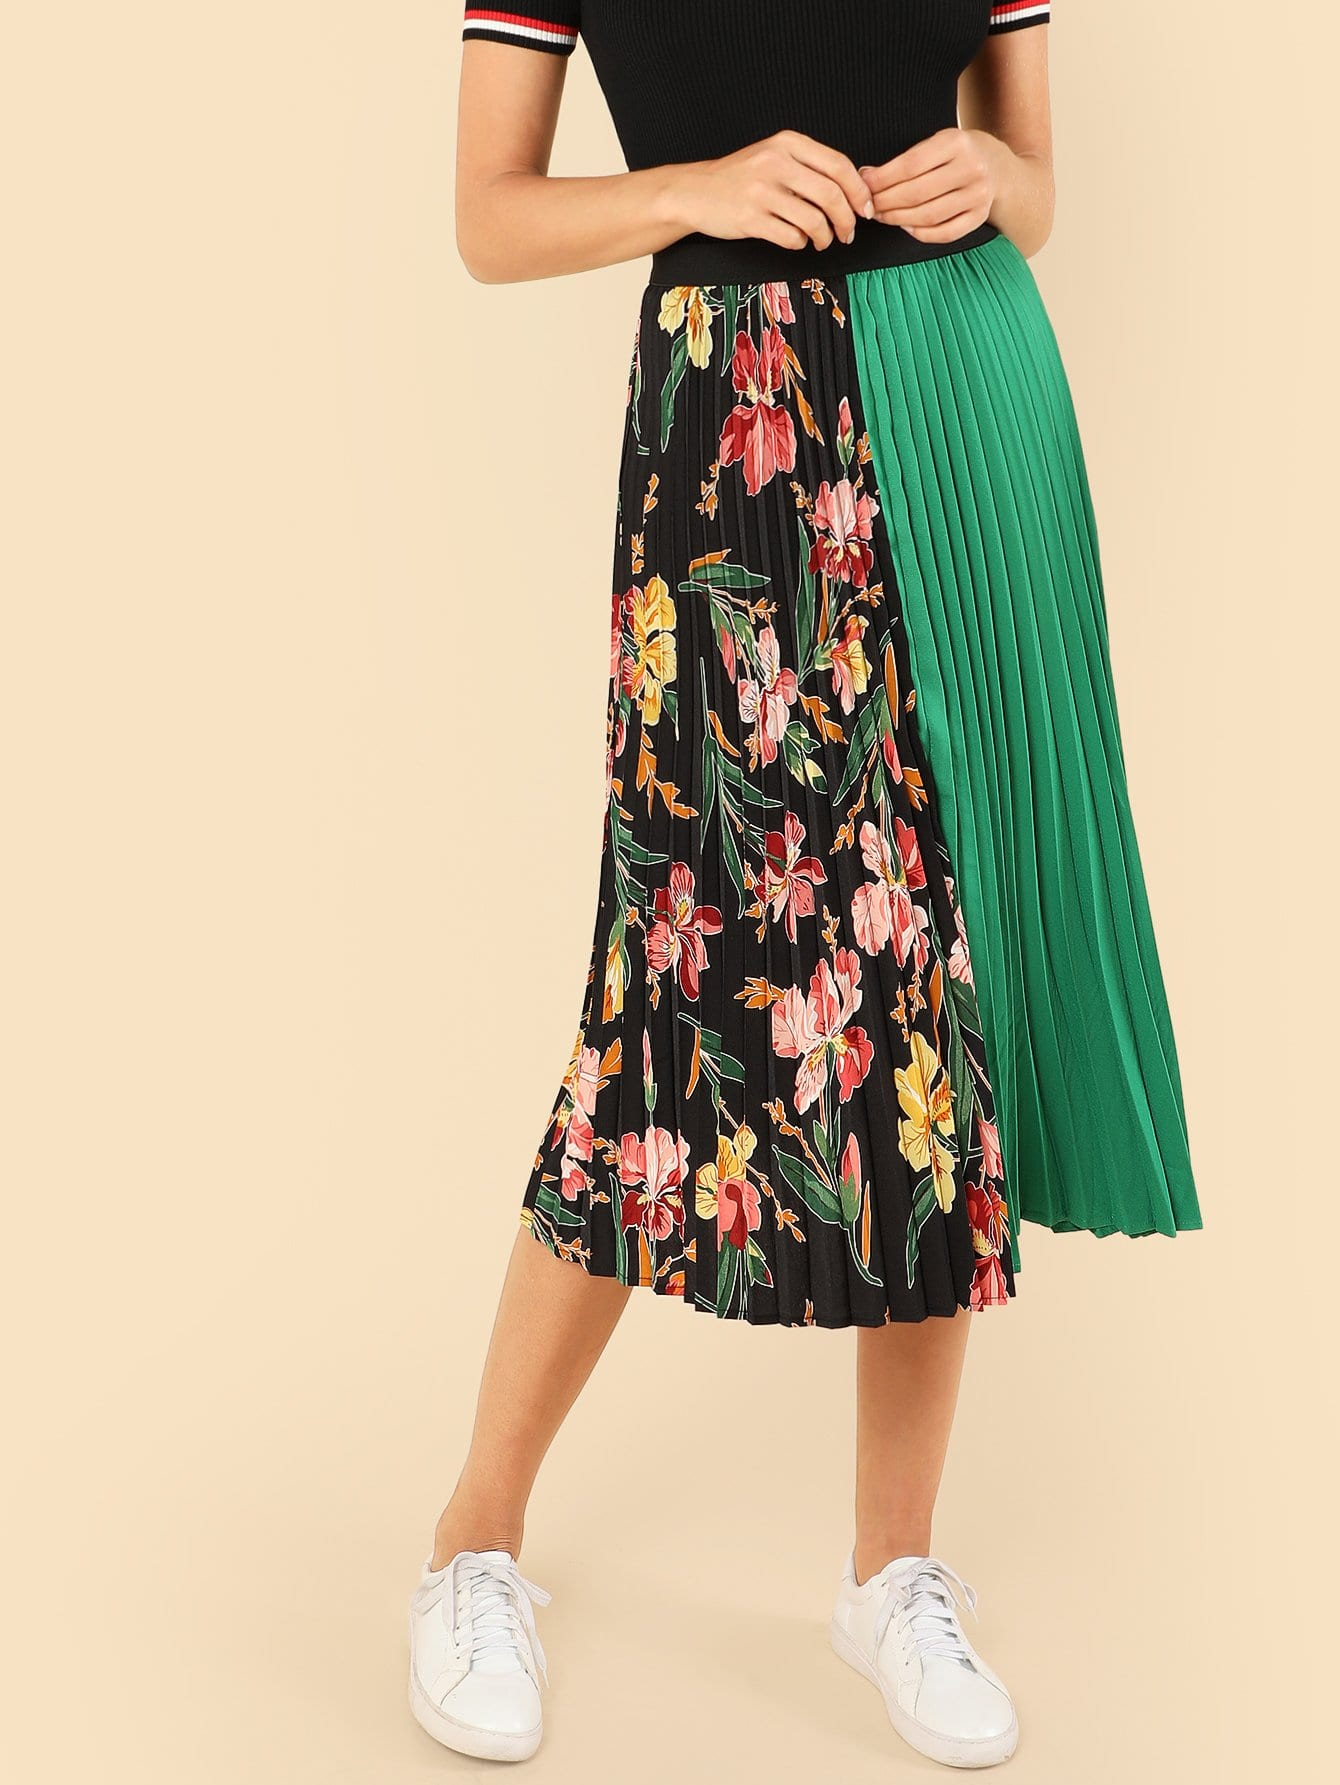 Cut And Sew Pleated Skirt new lone wolf and cub v 7